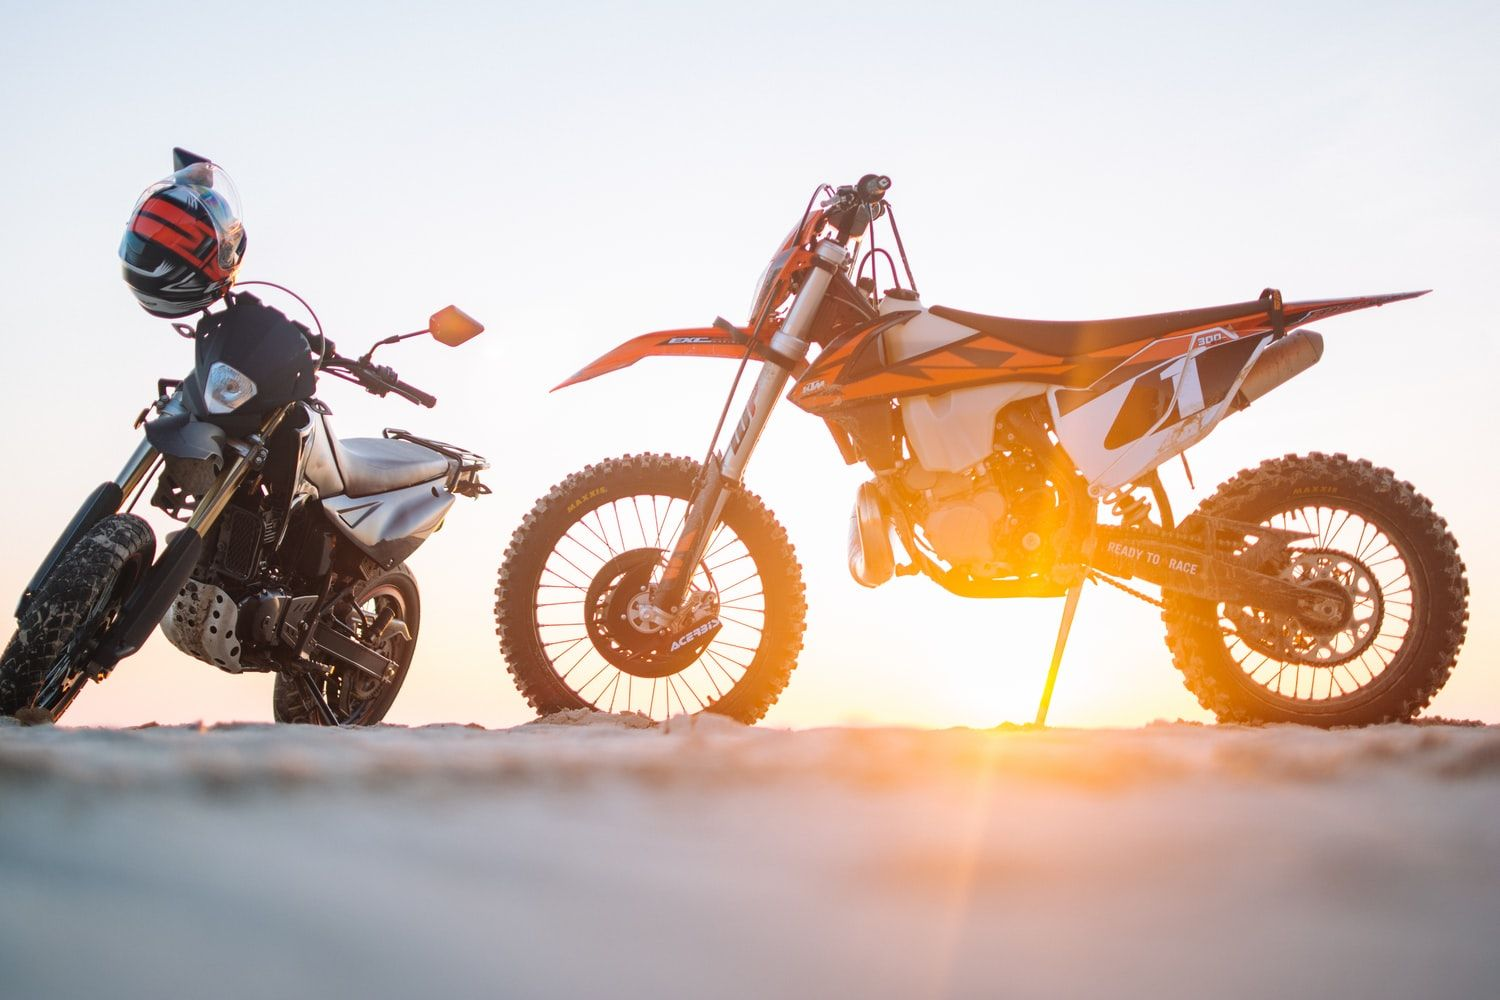 How Much Does Dirt Bike Insurance Cost? (Important Details To Consider)